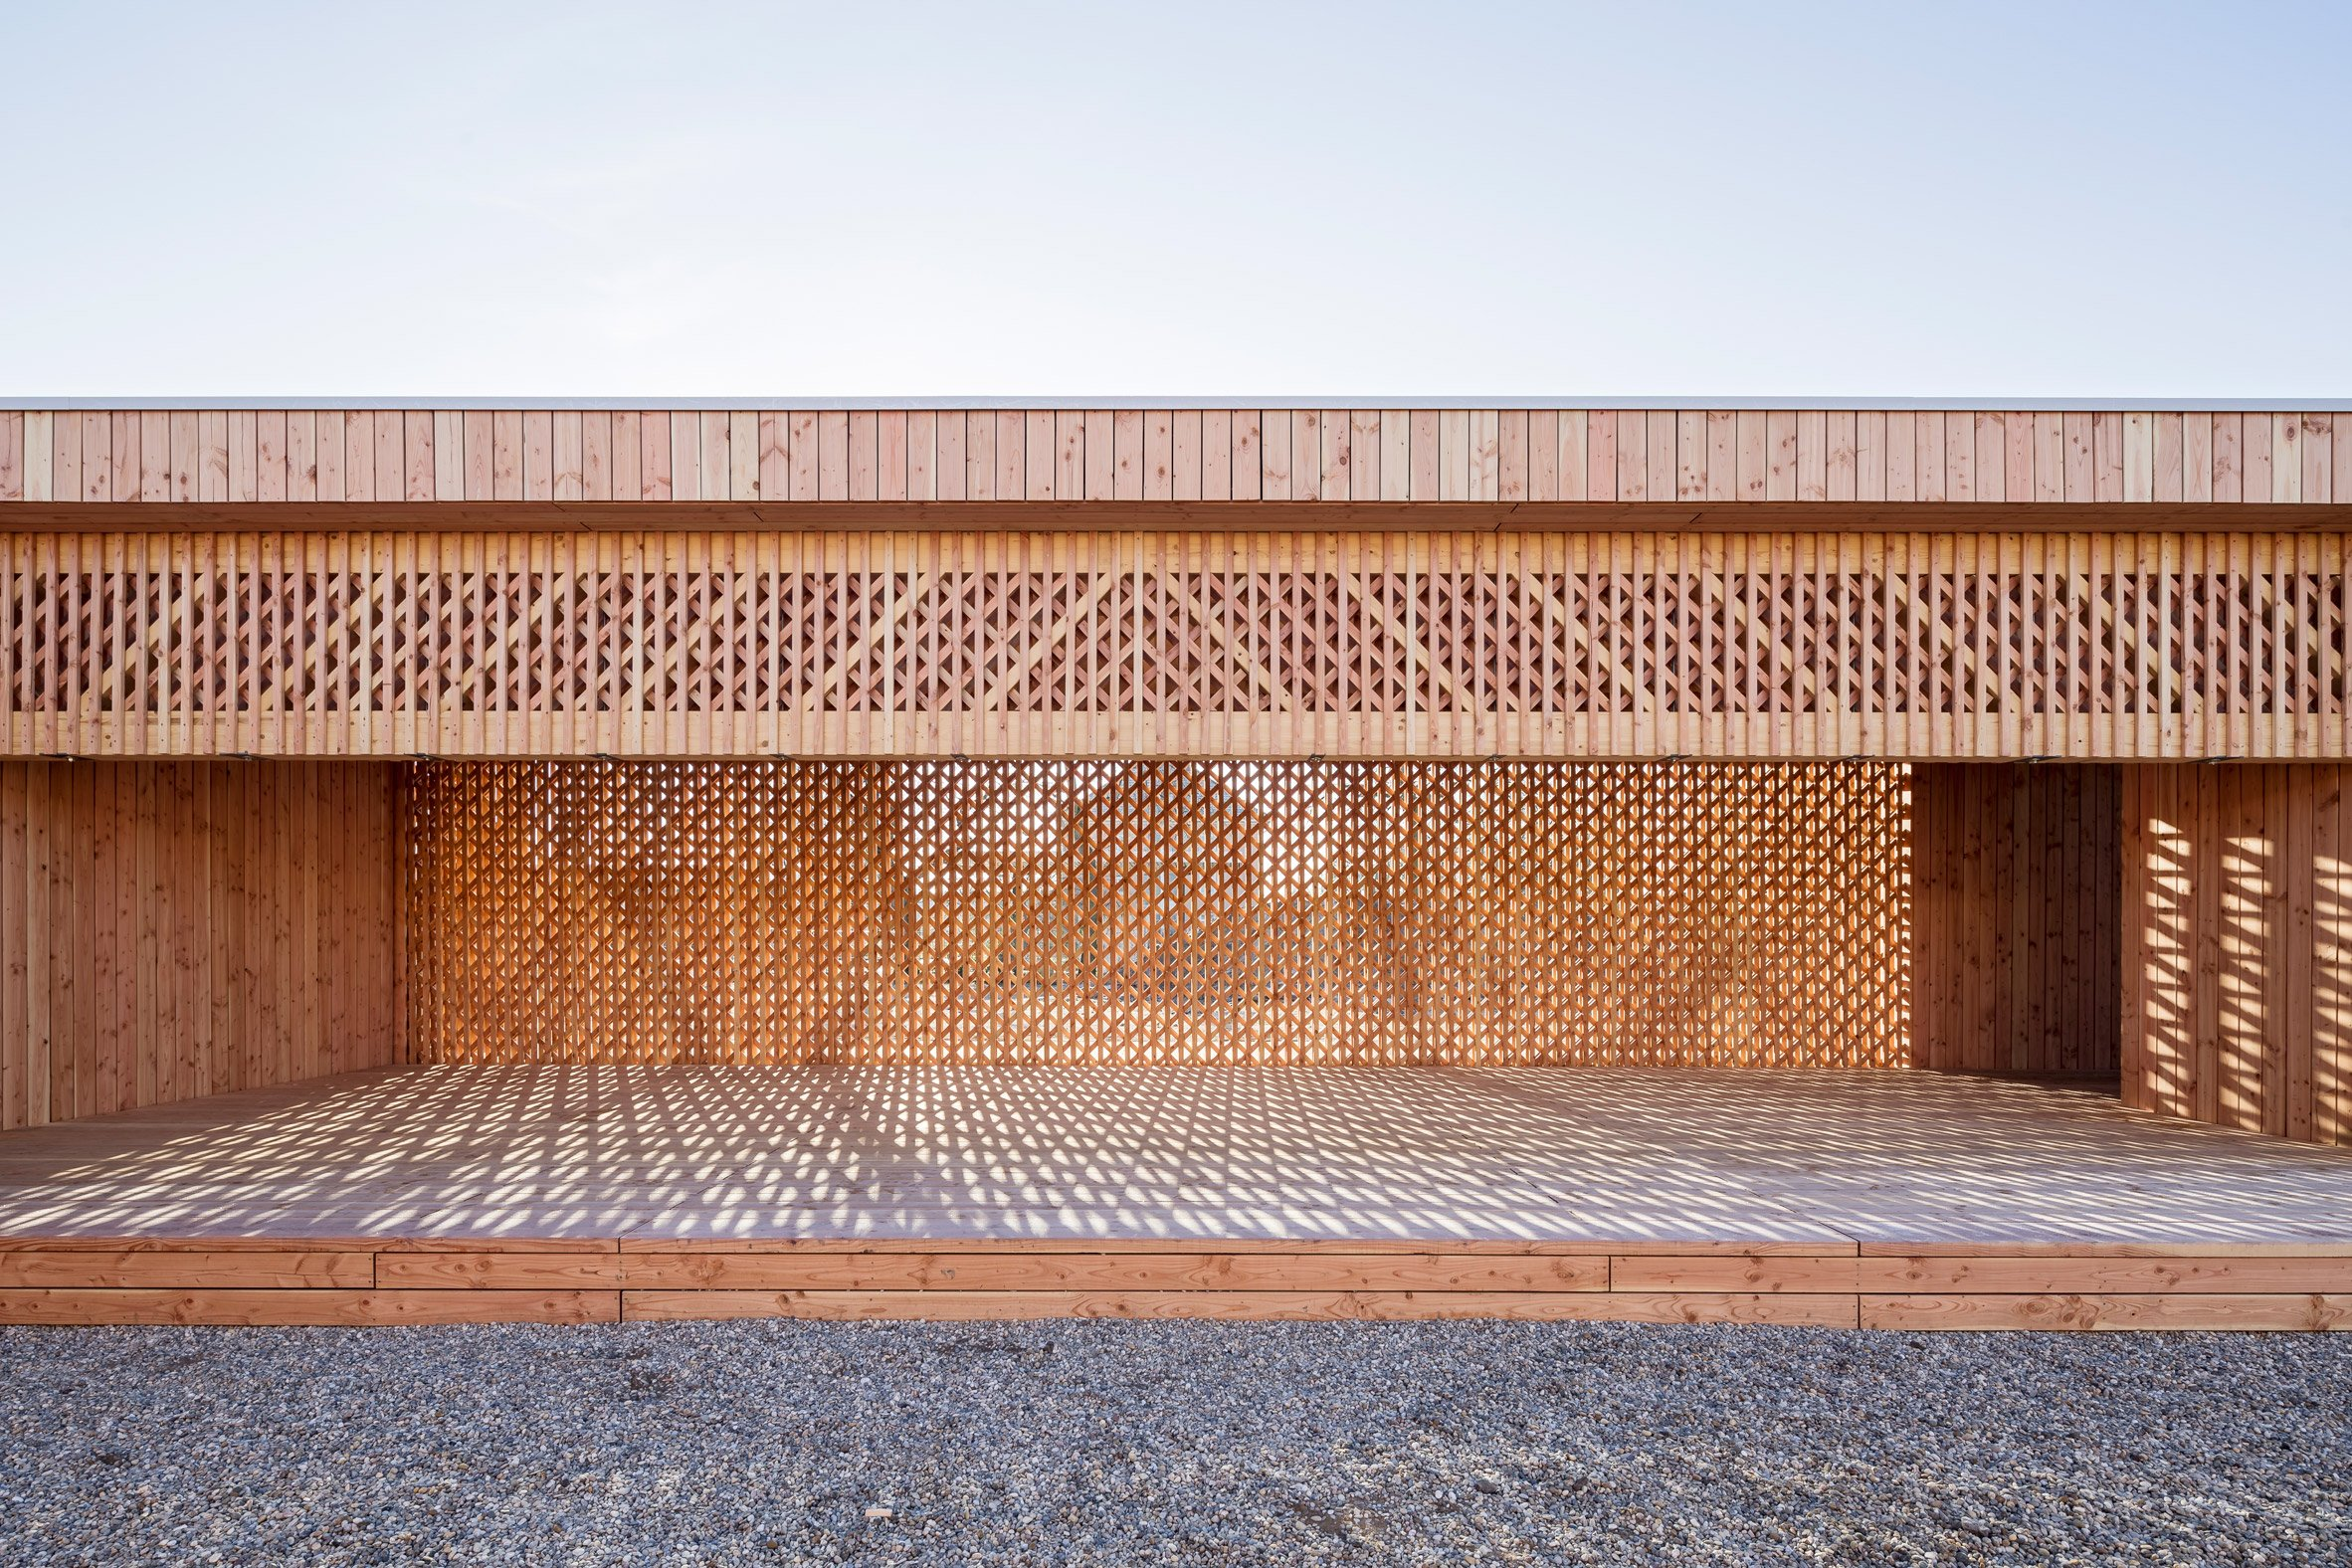 Architecture students build latticed-wood community centre in German refugee camp